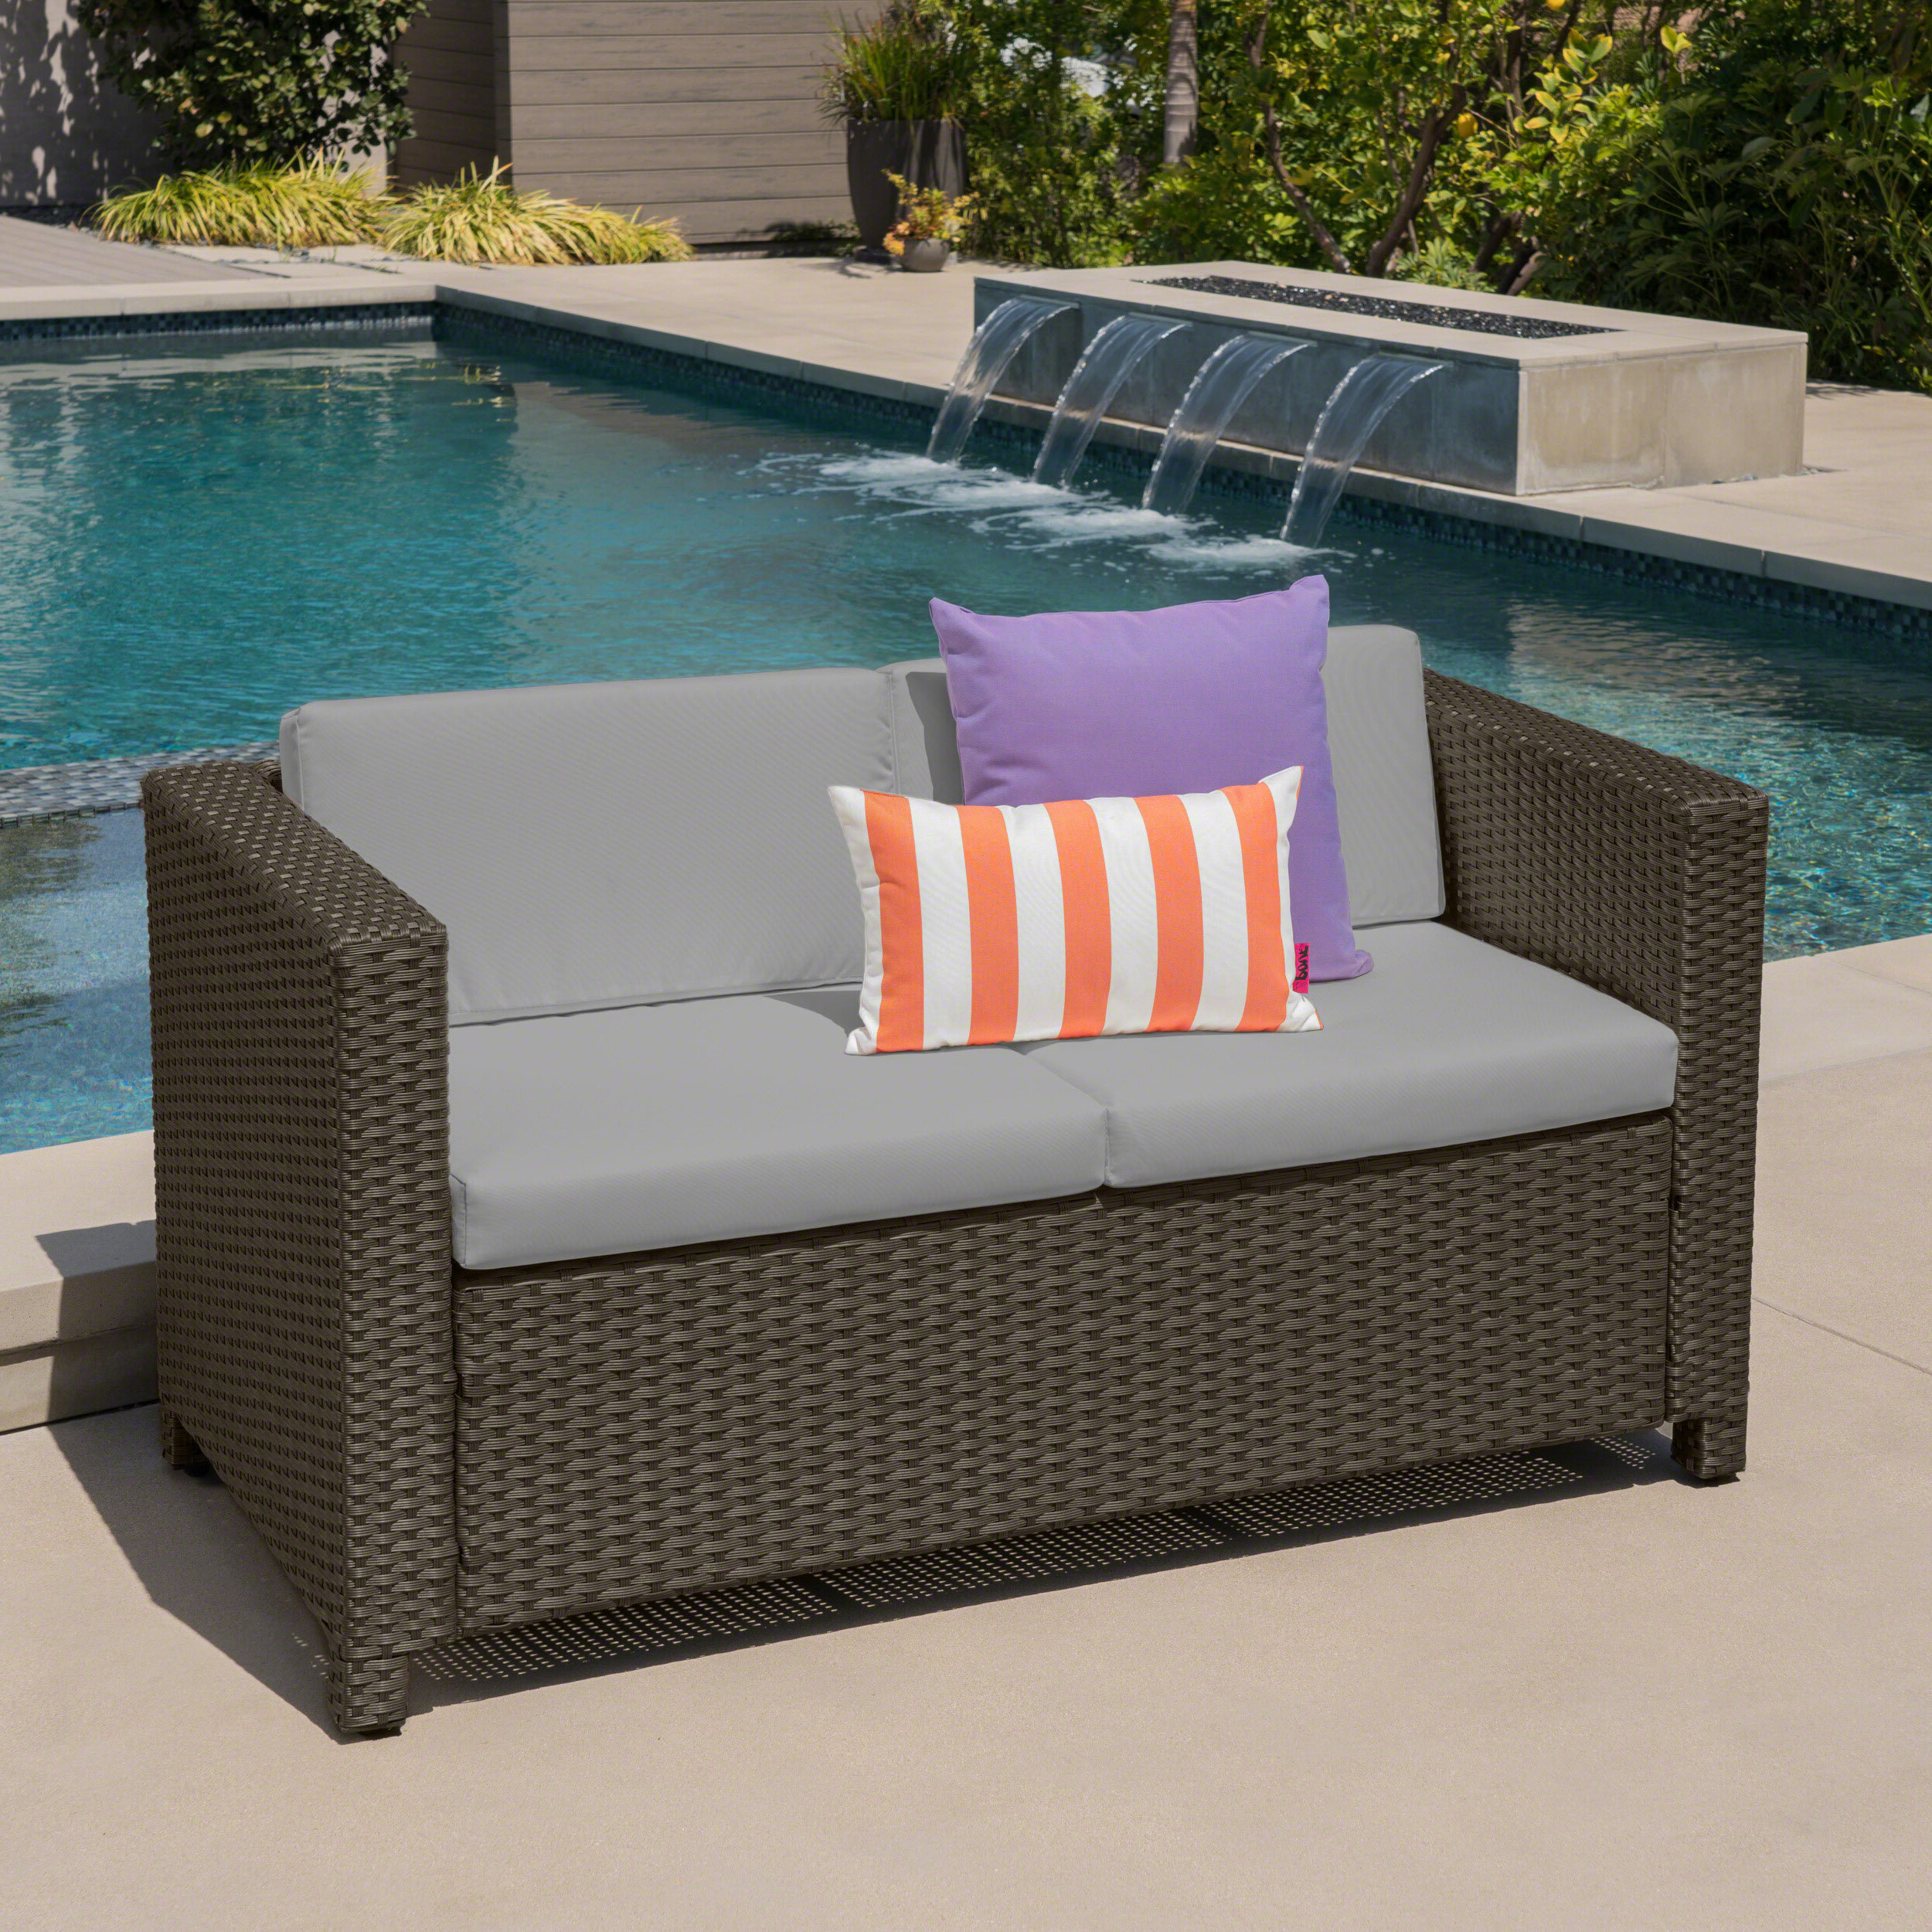 Furst Patio Sofas With Cushion Intended For Newest Furst Outdoor Loveseat With Cushions (View 8 of 20)